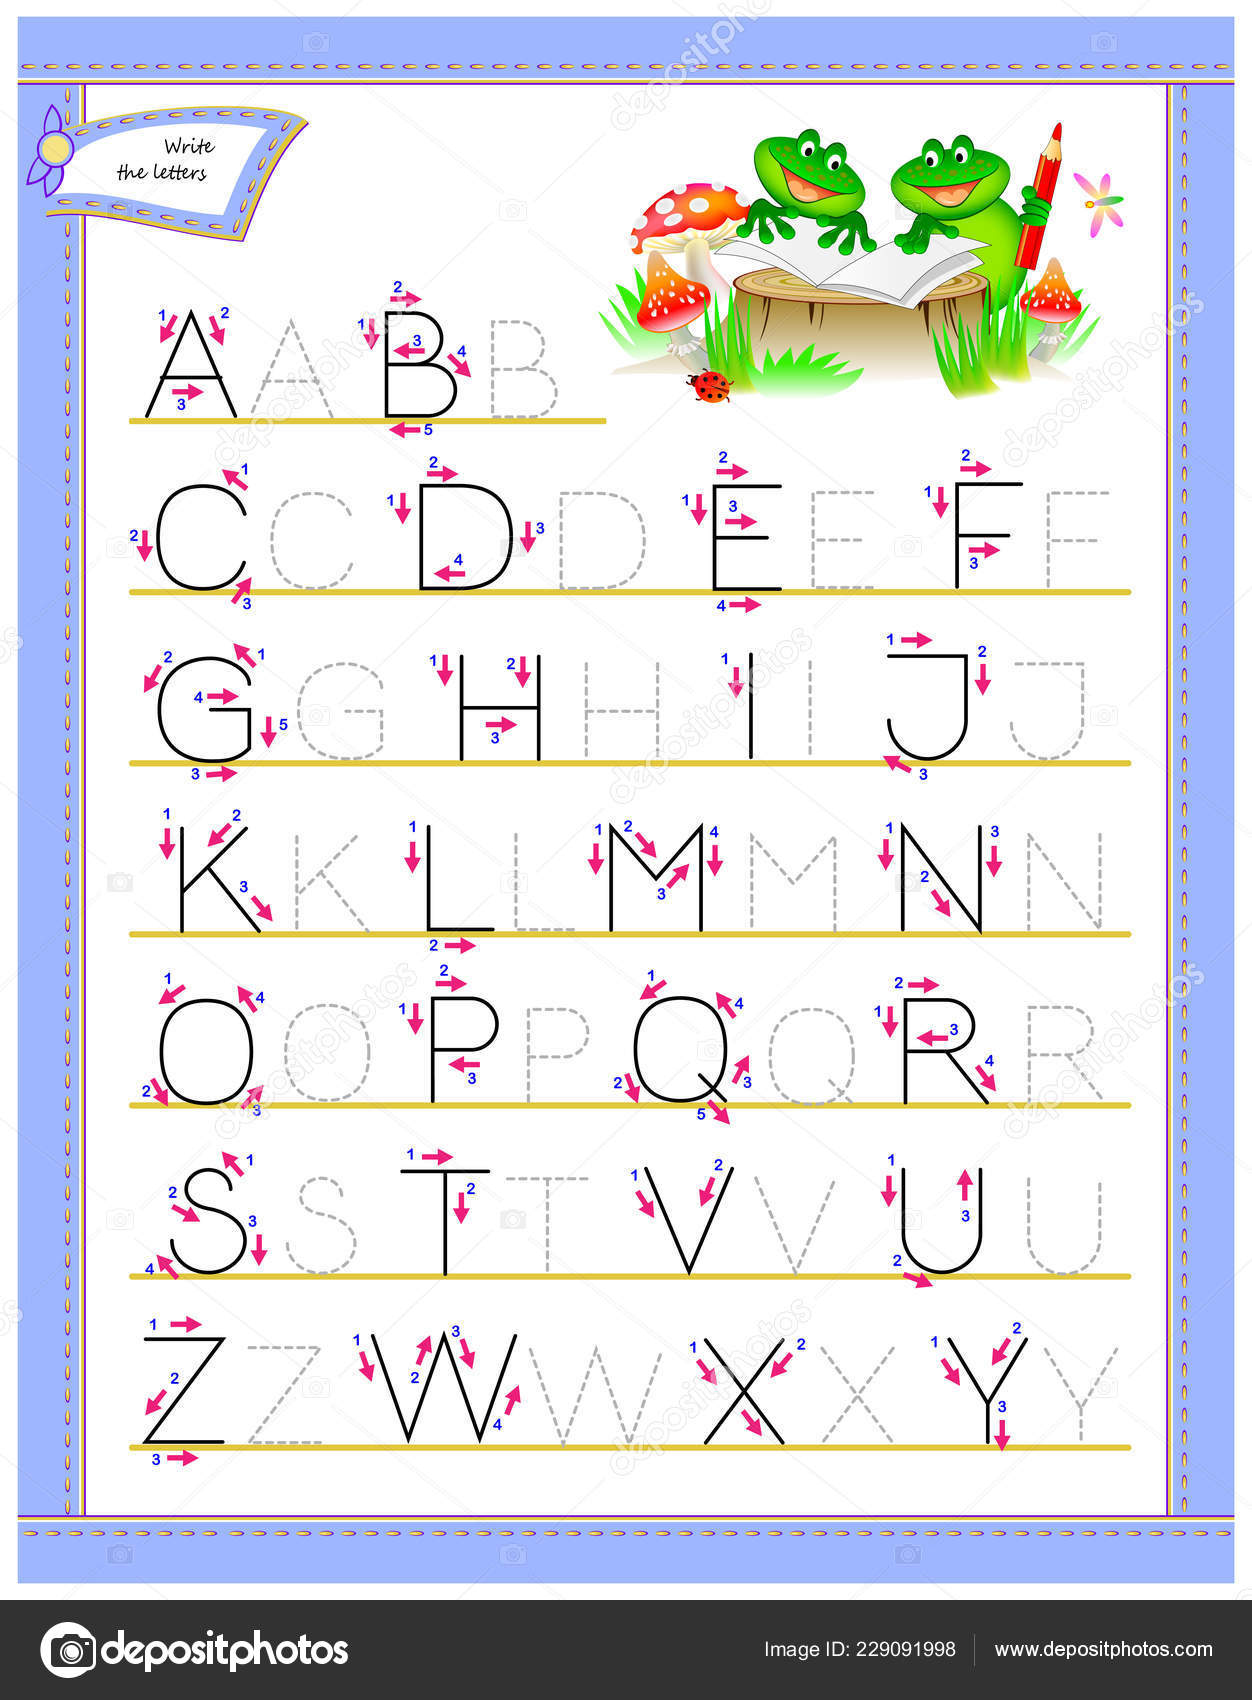 picture regarding Tracing Alphabet Printable named Tracing Abc Letters Investigation English Alphabet Worksheet Little ones